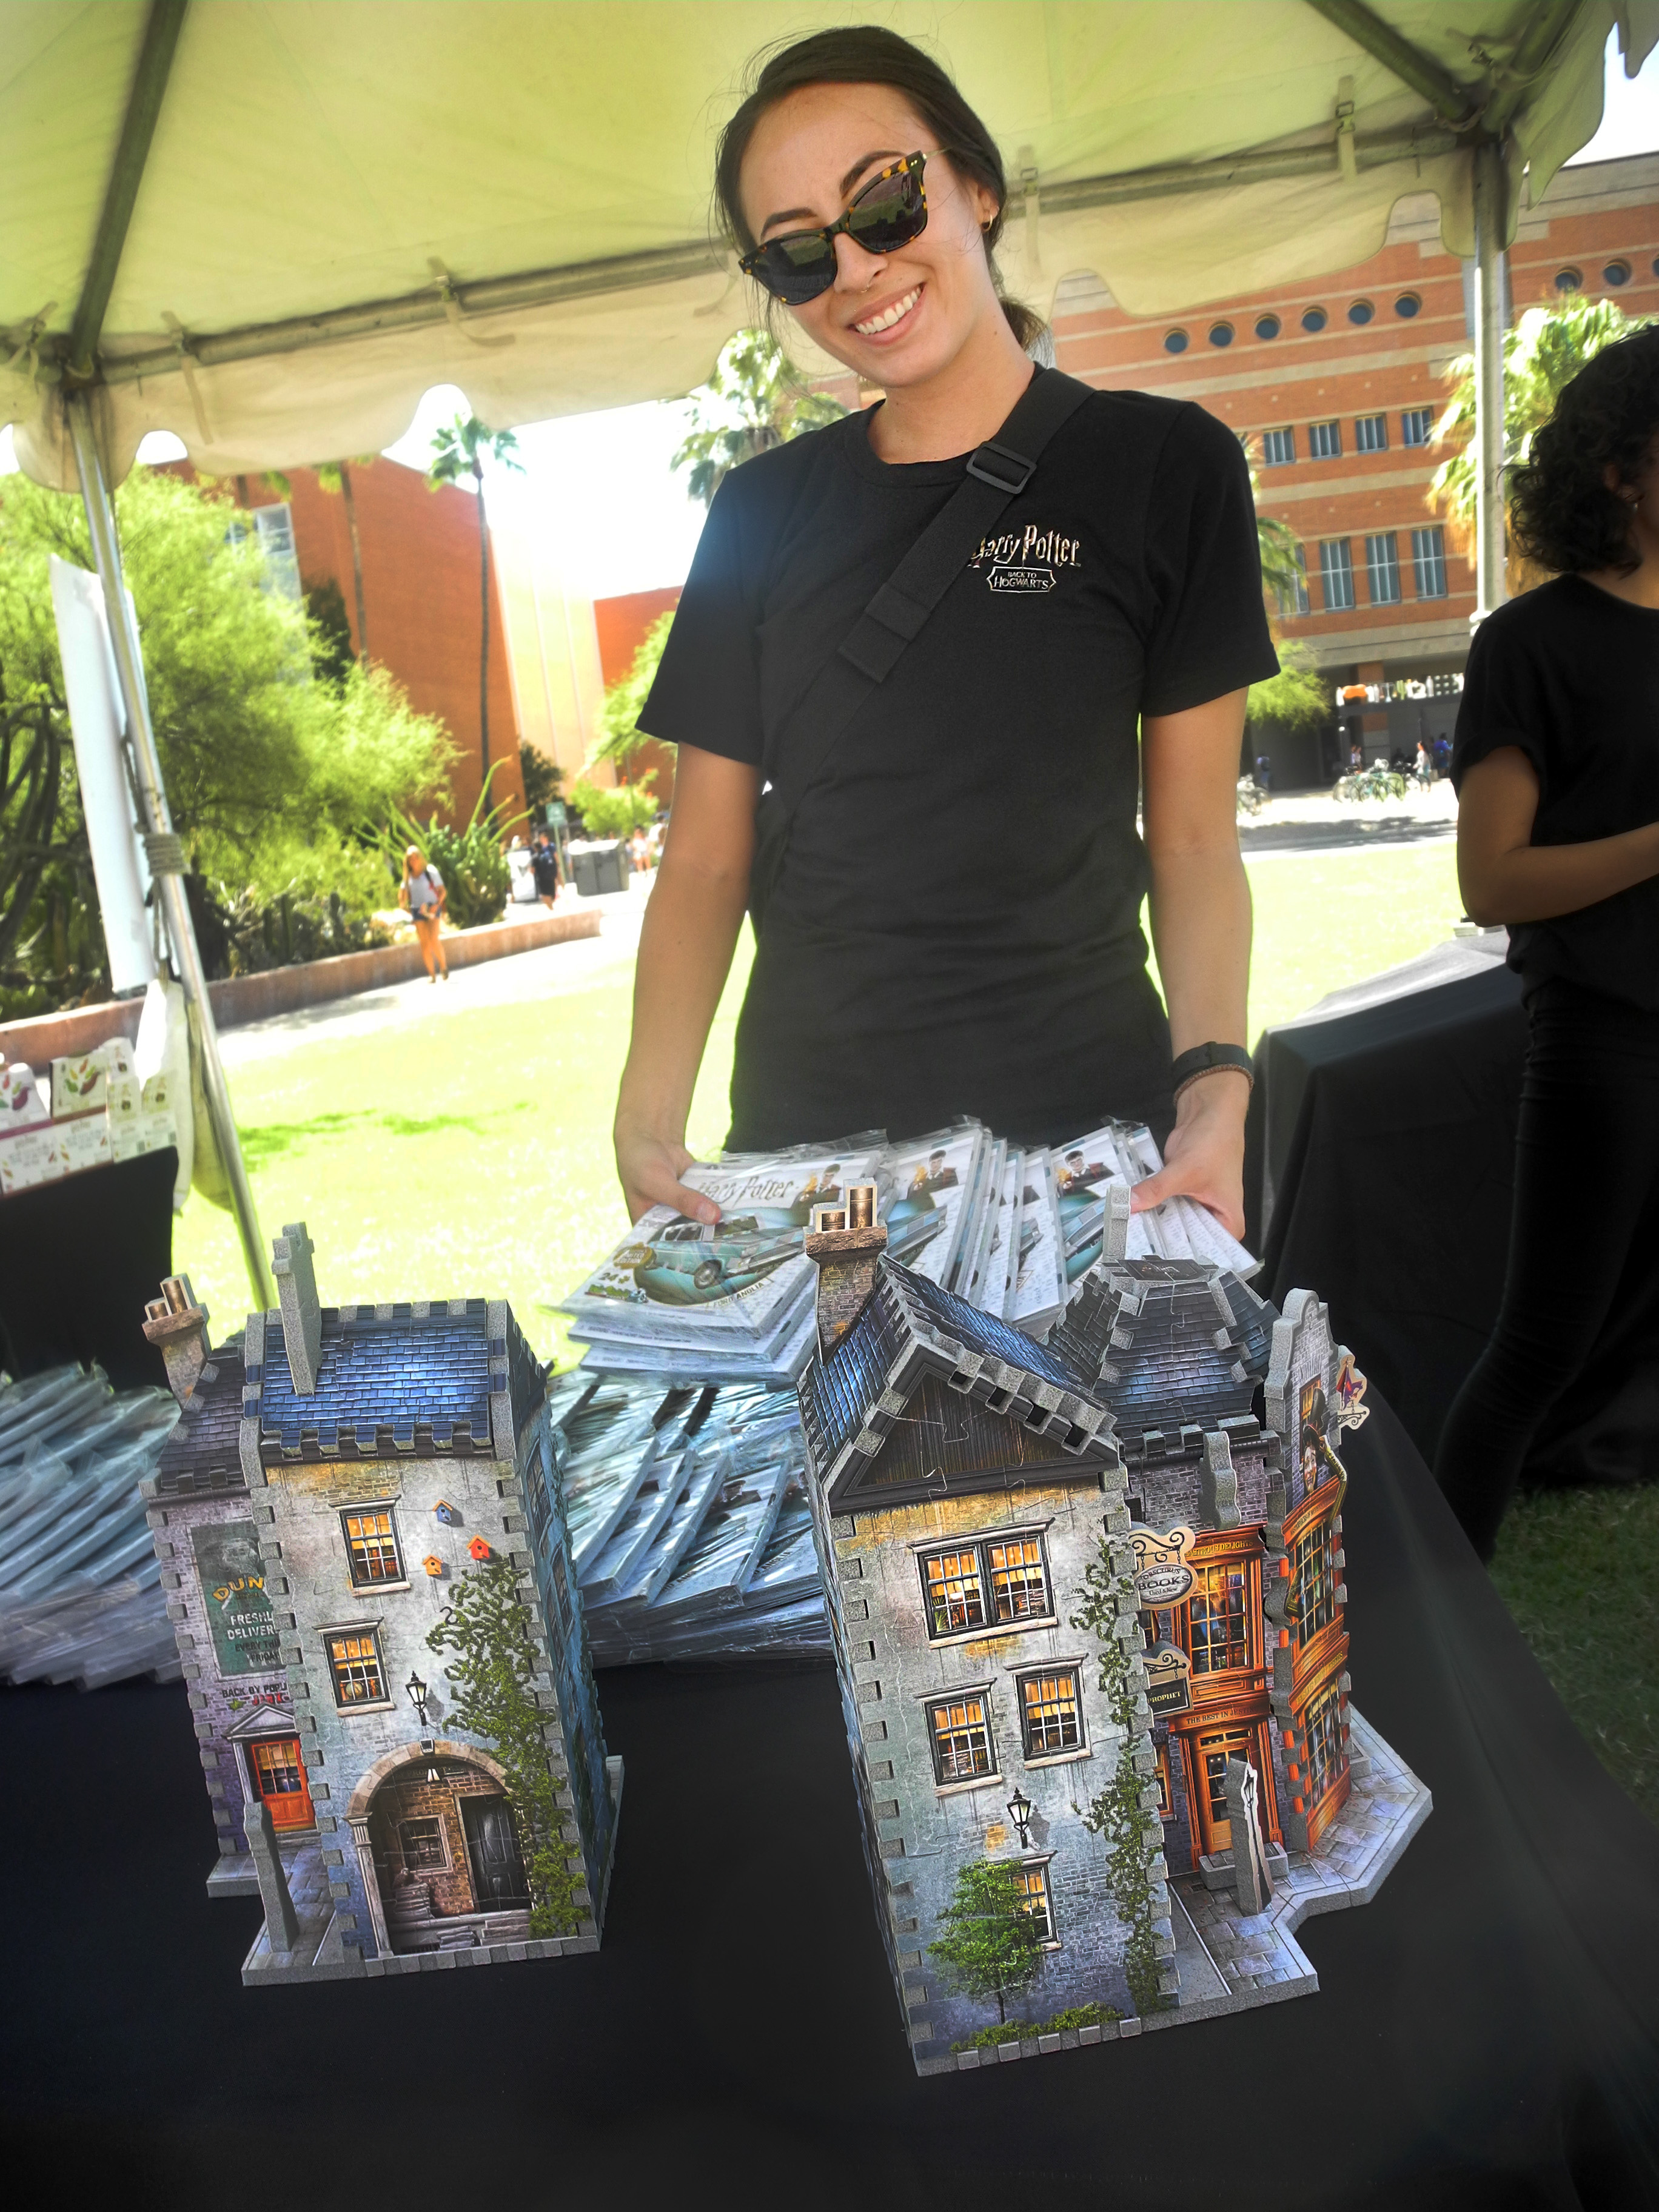 Workers at the Back to Hogwarts event at the University of Arizona were ready and waiting to hand out prizes and help students complete their quest.